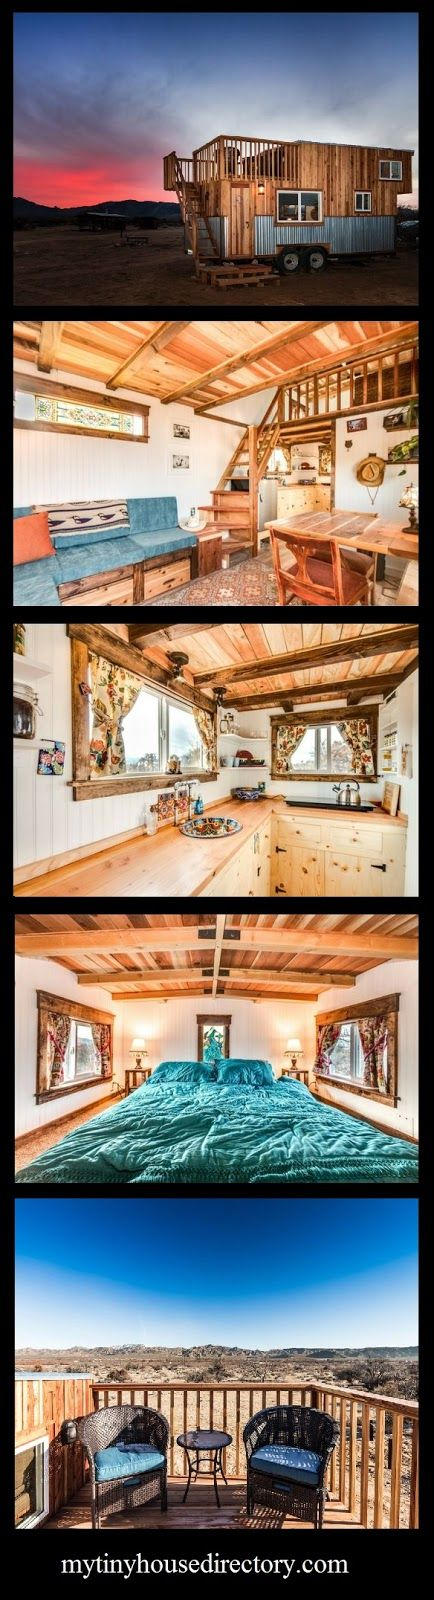 17 Best ideas about Tiny House Rentals on Pinterest House